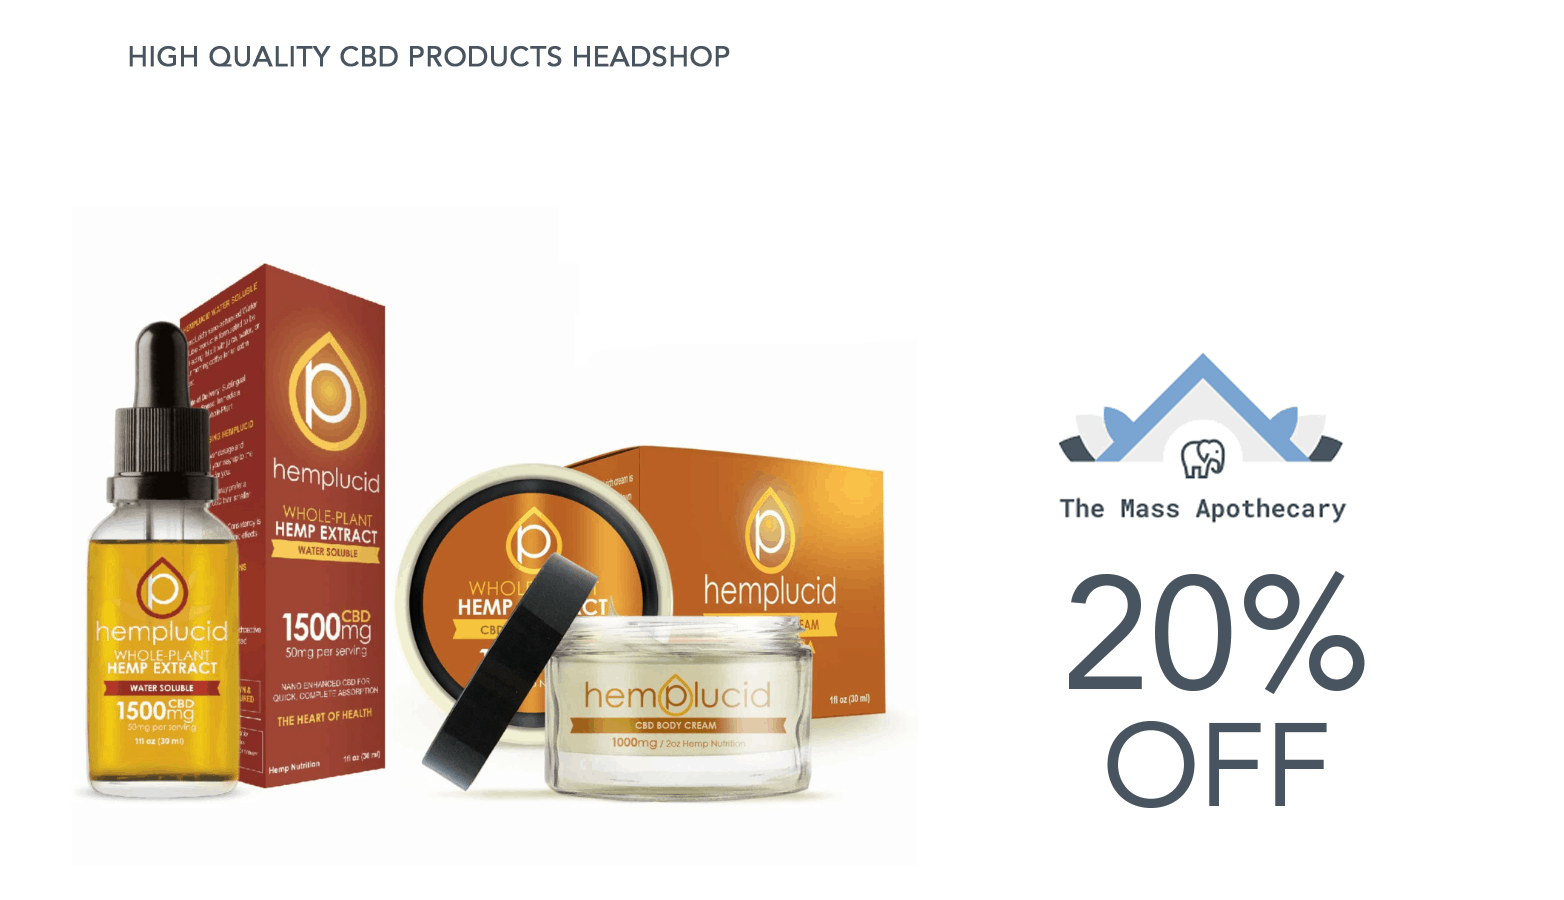 The Mass Apothecary Online CBD Coupons